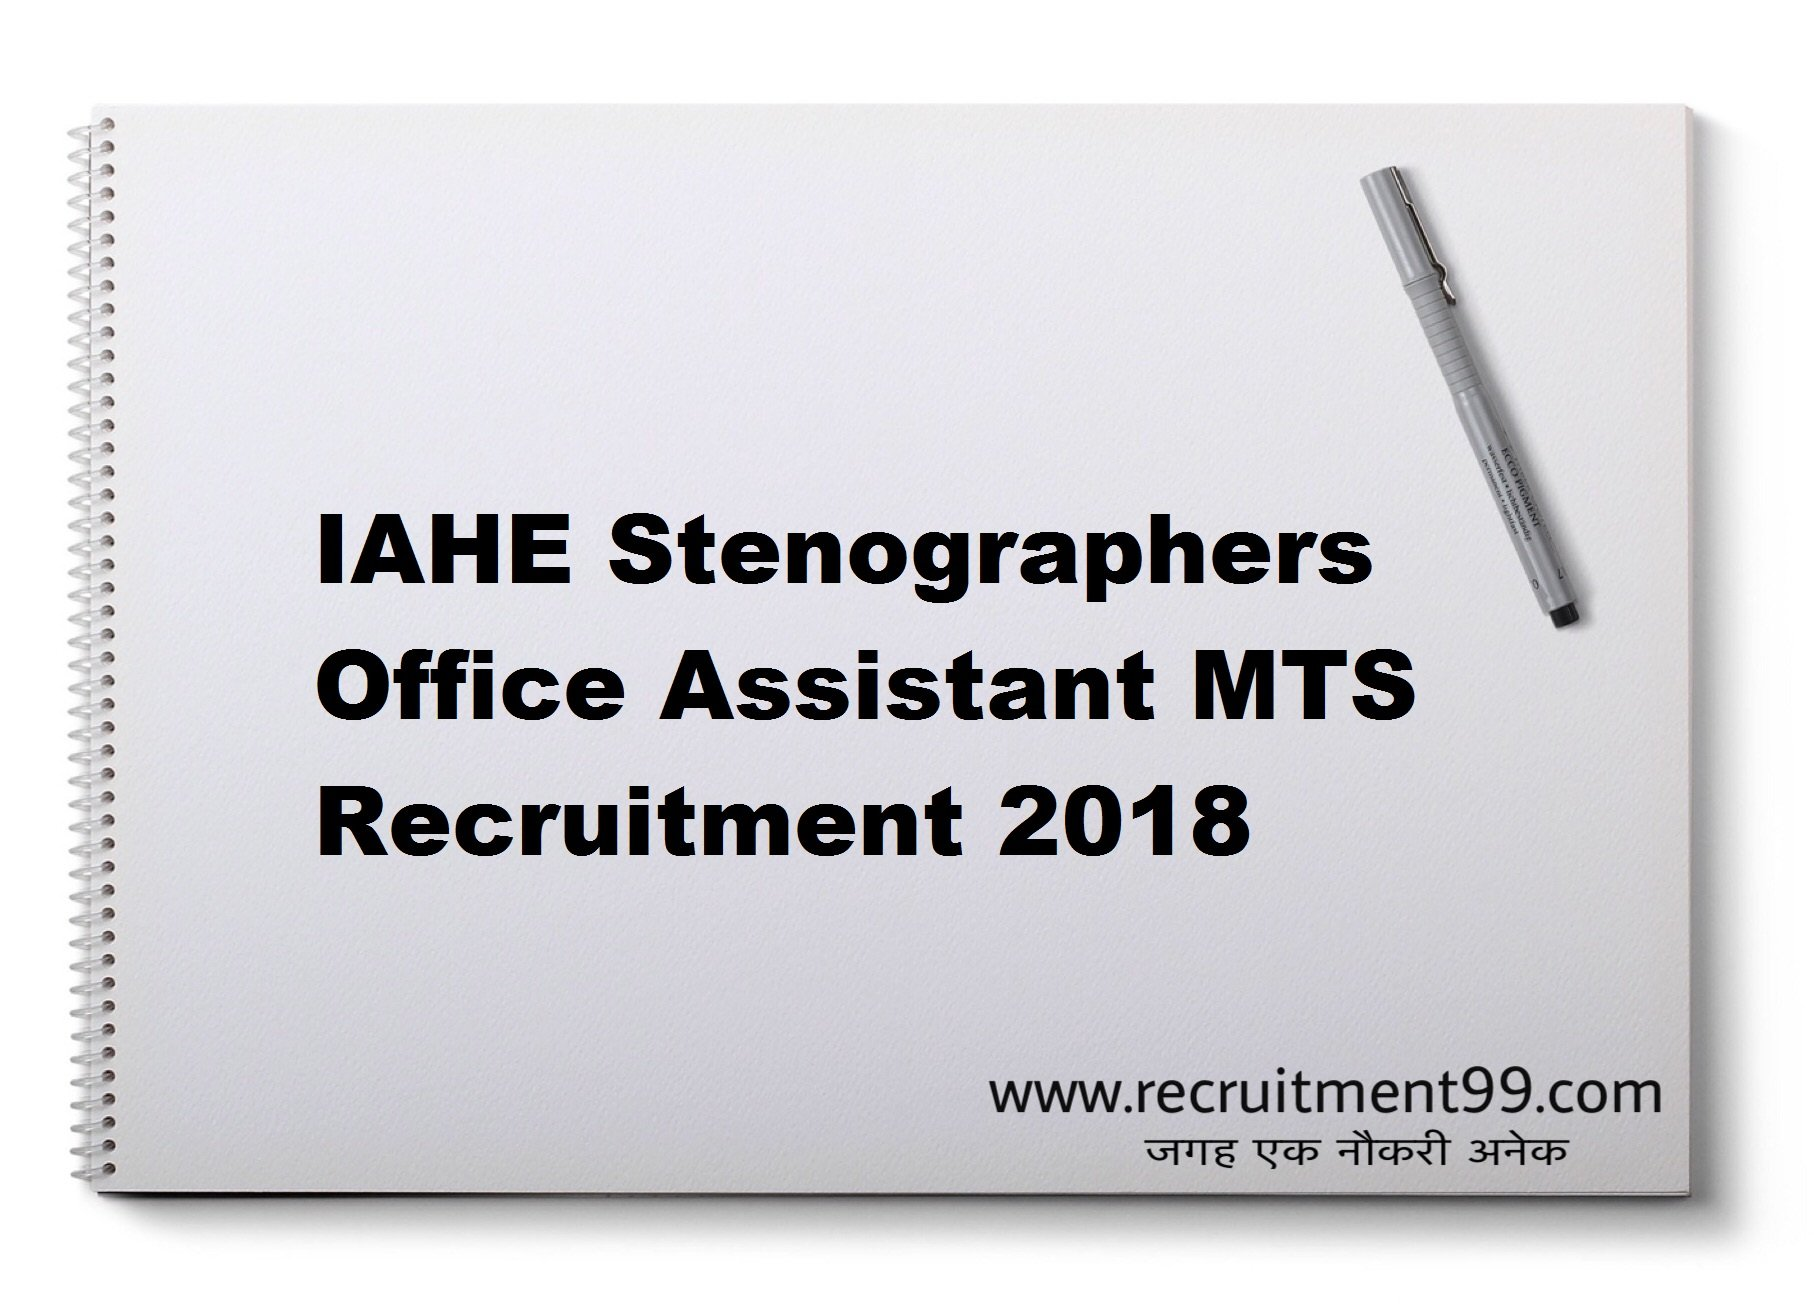 IAHE Stenographer Office Assistant MTS Recruitment Admit Card Result 2018